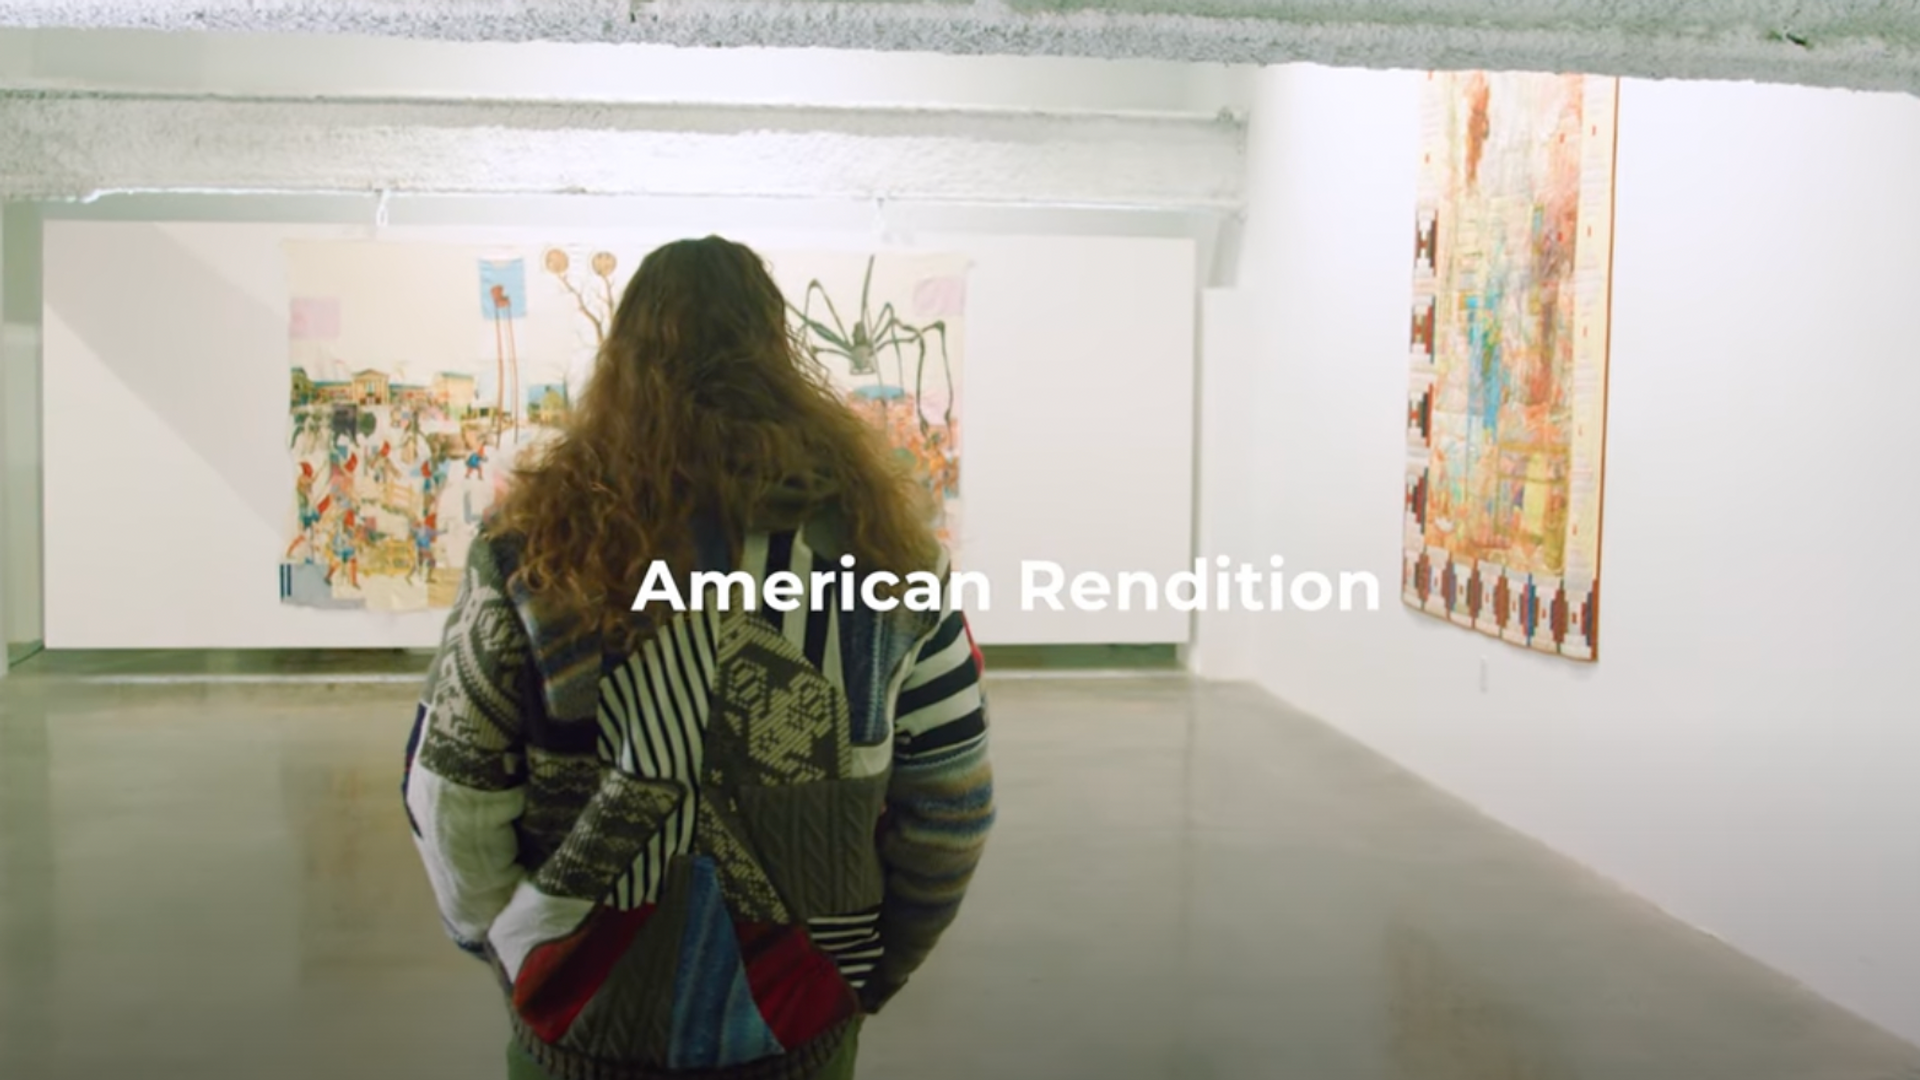 American Rendition (video)